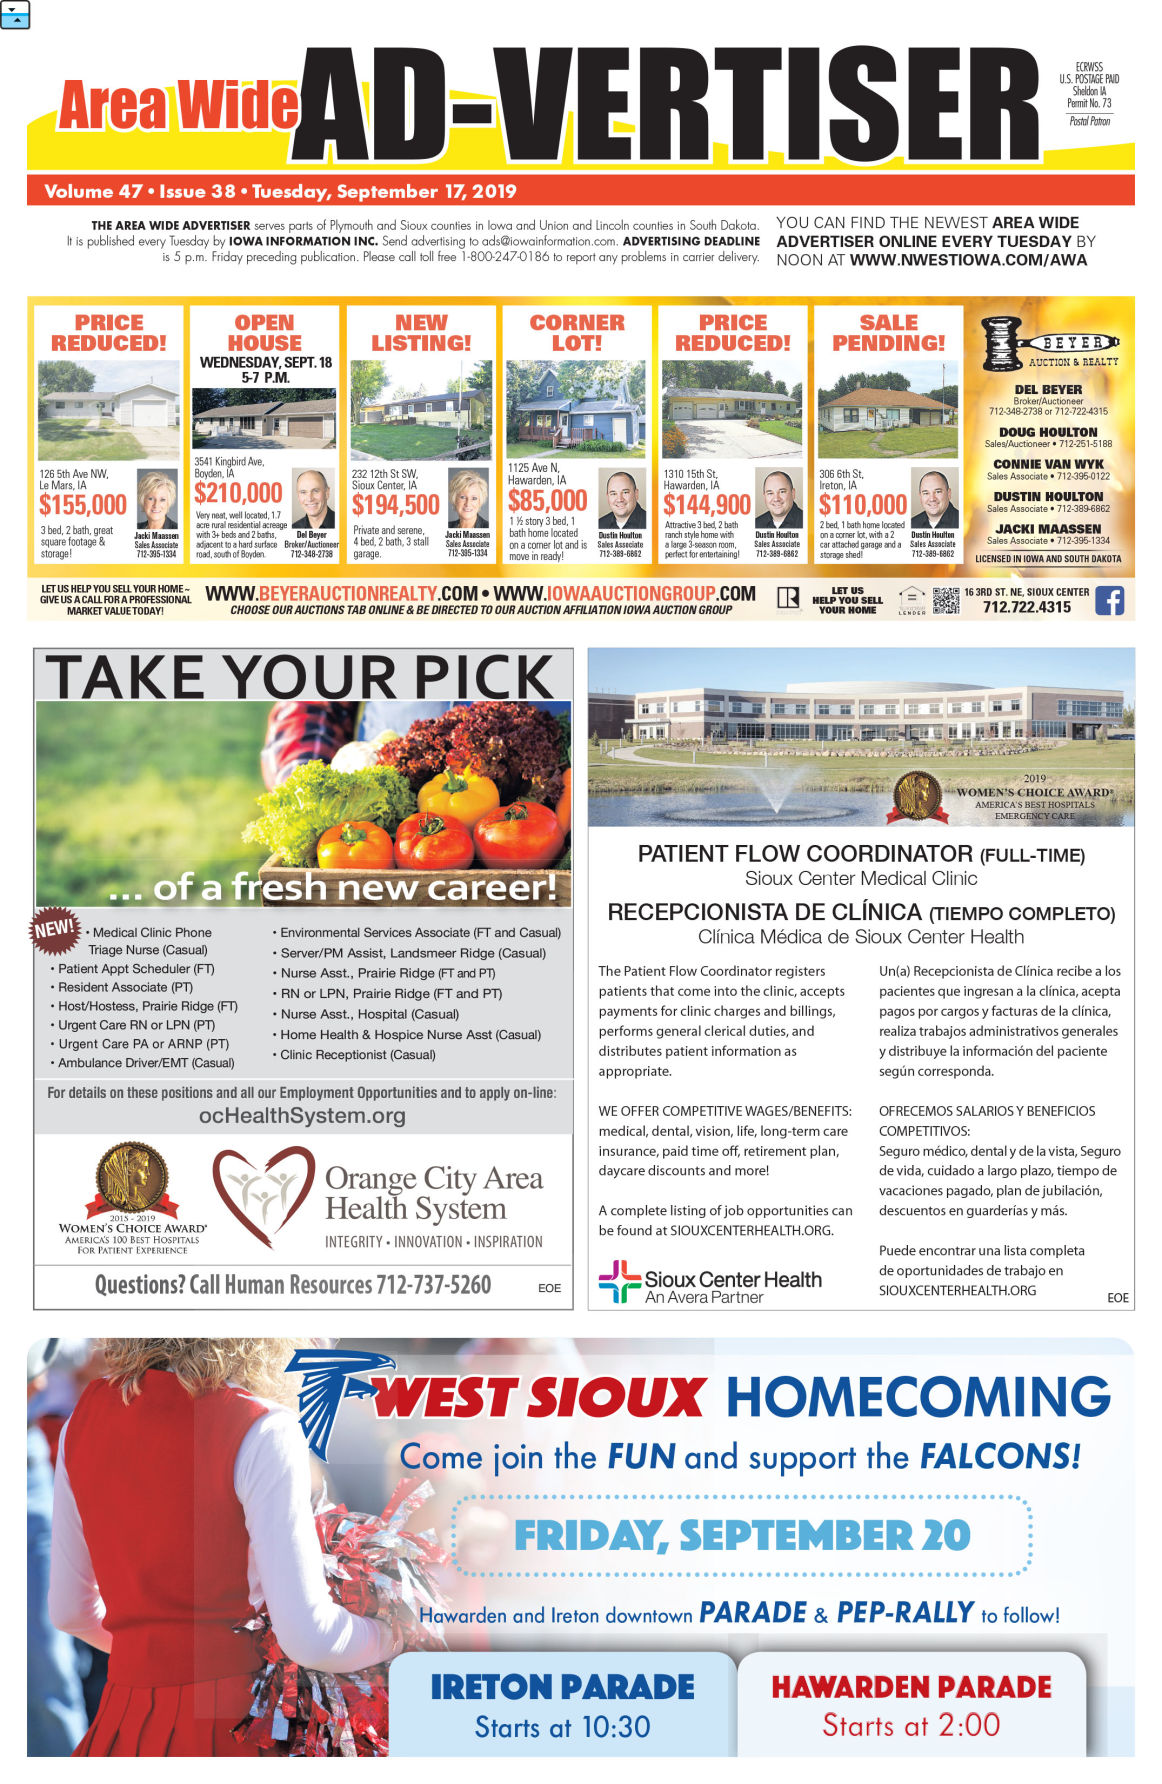 Area Wide Ad-vertiser: September 17, 2019